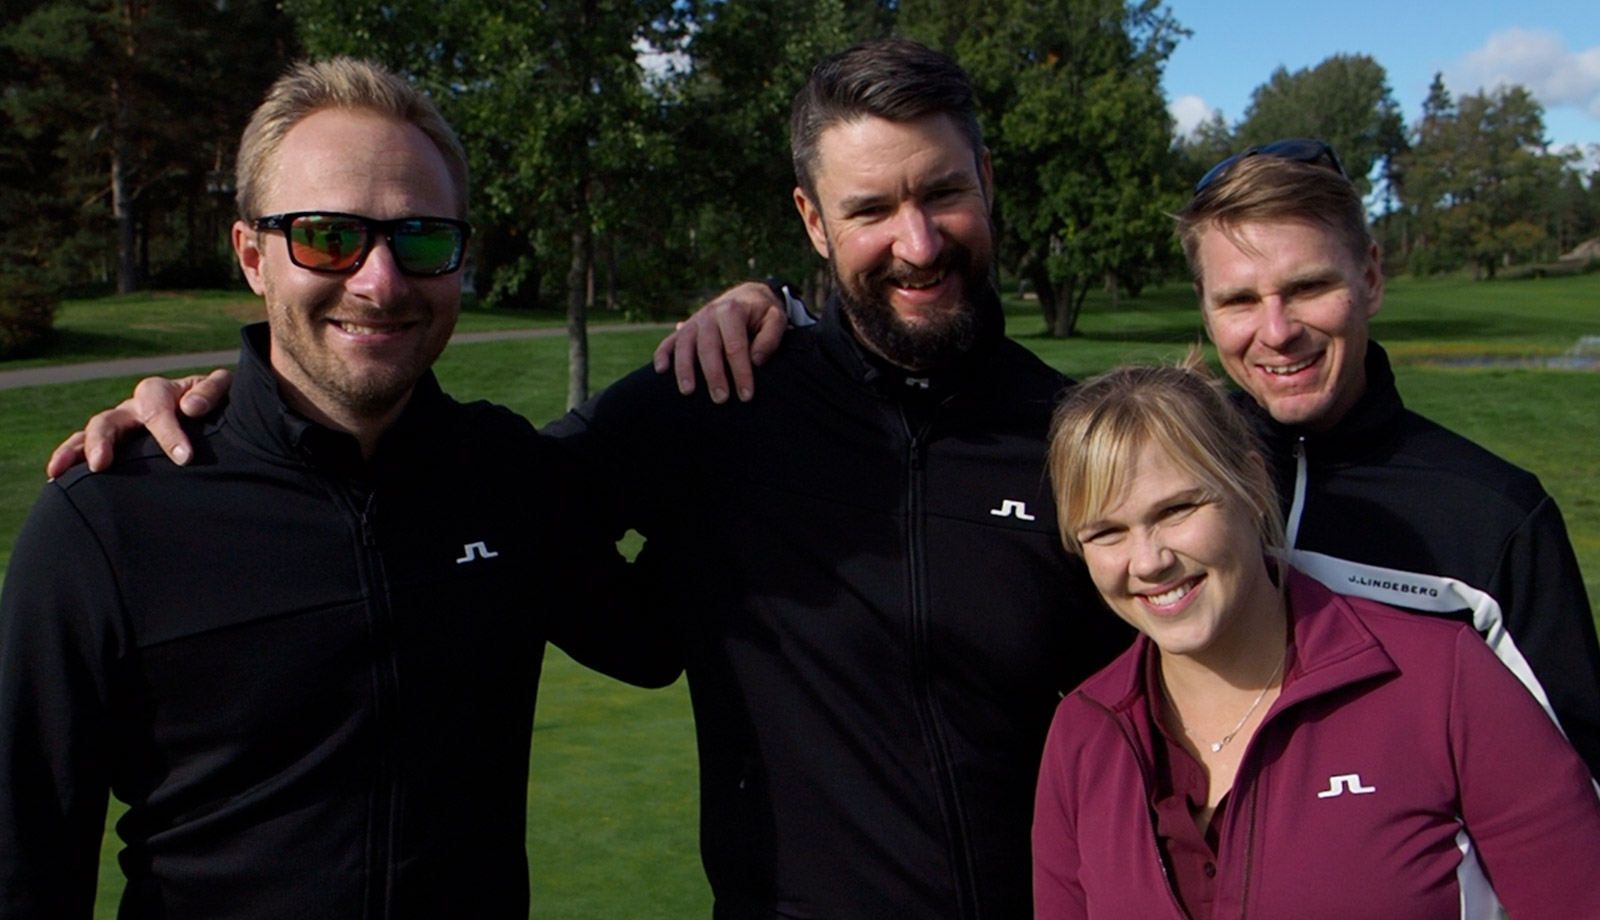 Minni & Roope Golf School